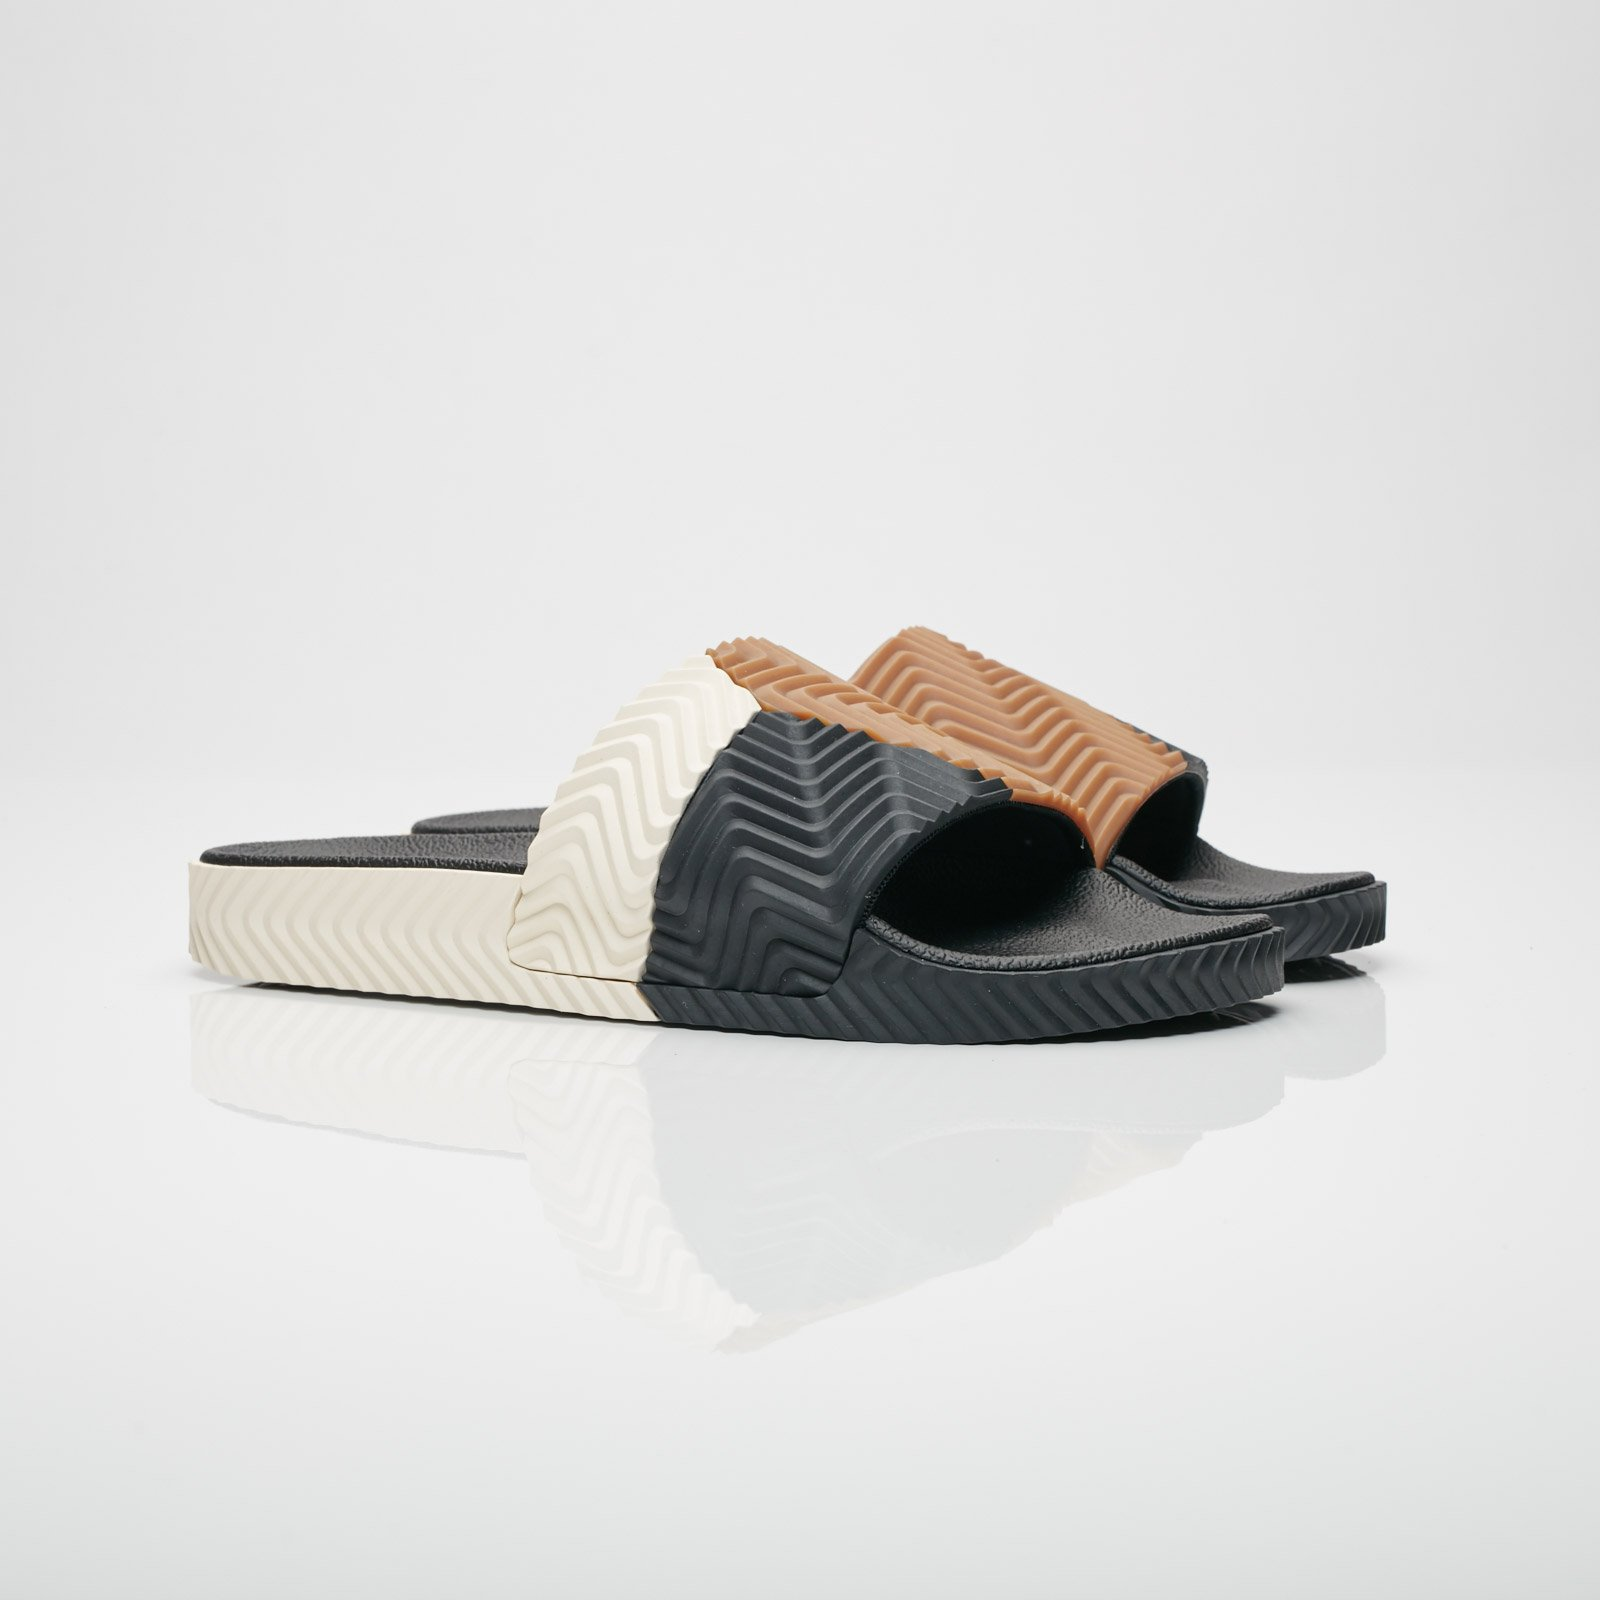 b7a4874e2807 adidas Originals by Alexander Wang Adilette Slides